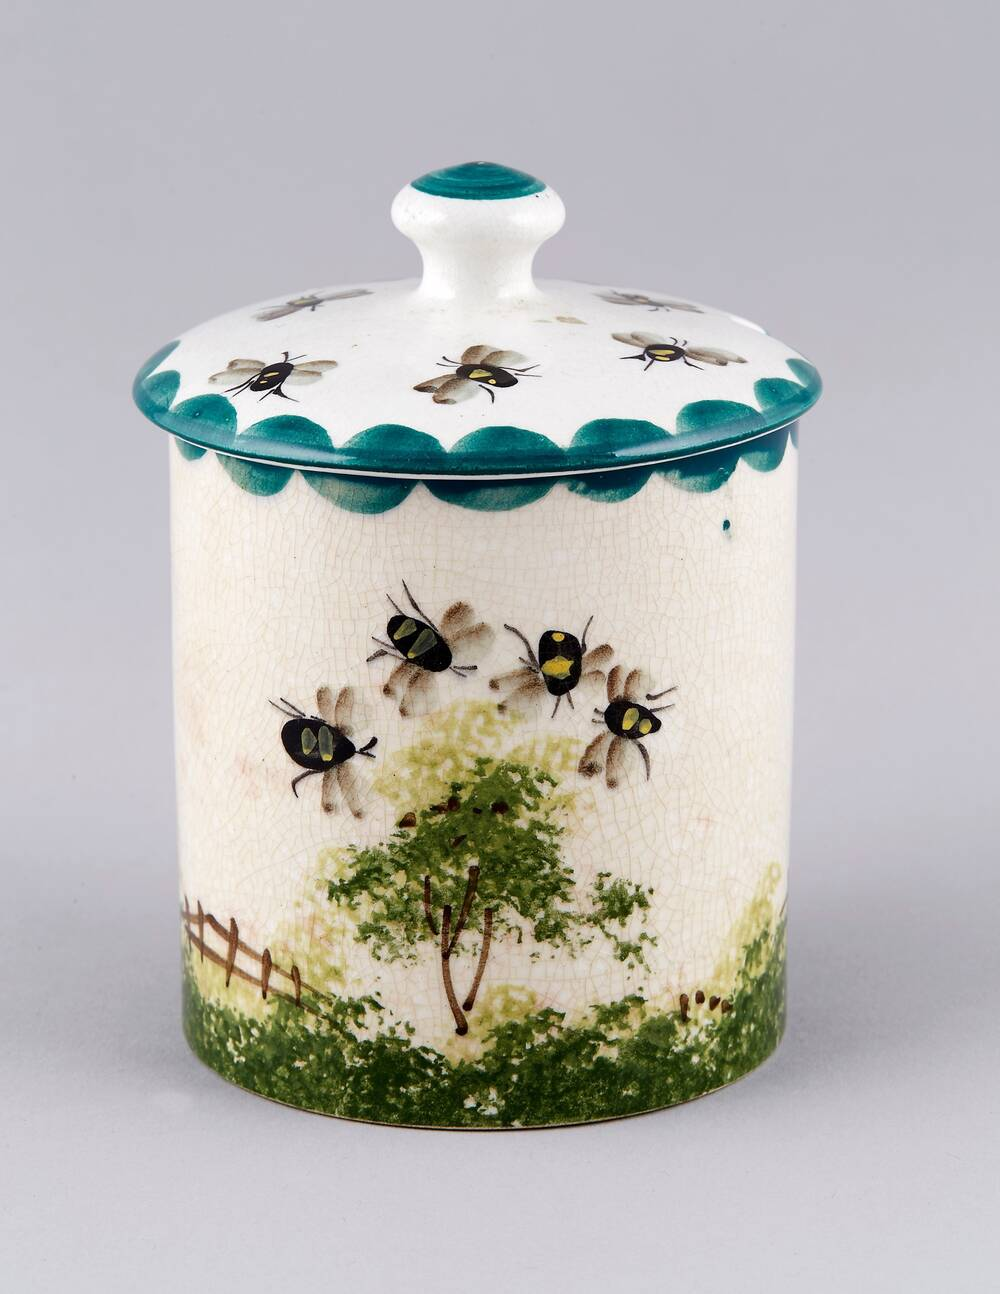 Wemyss Ware honey pot, showing the traditional bee design